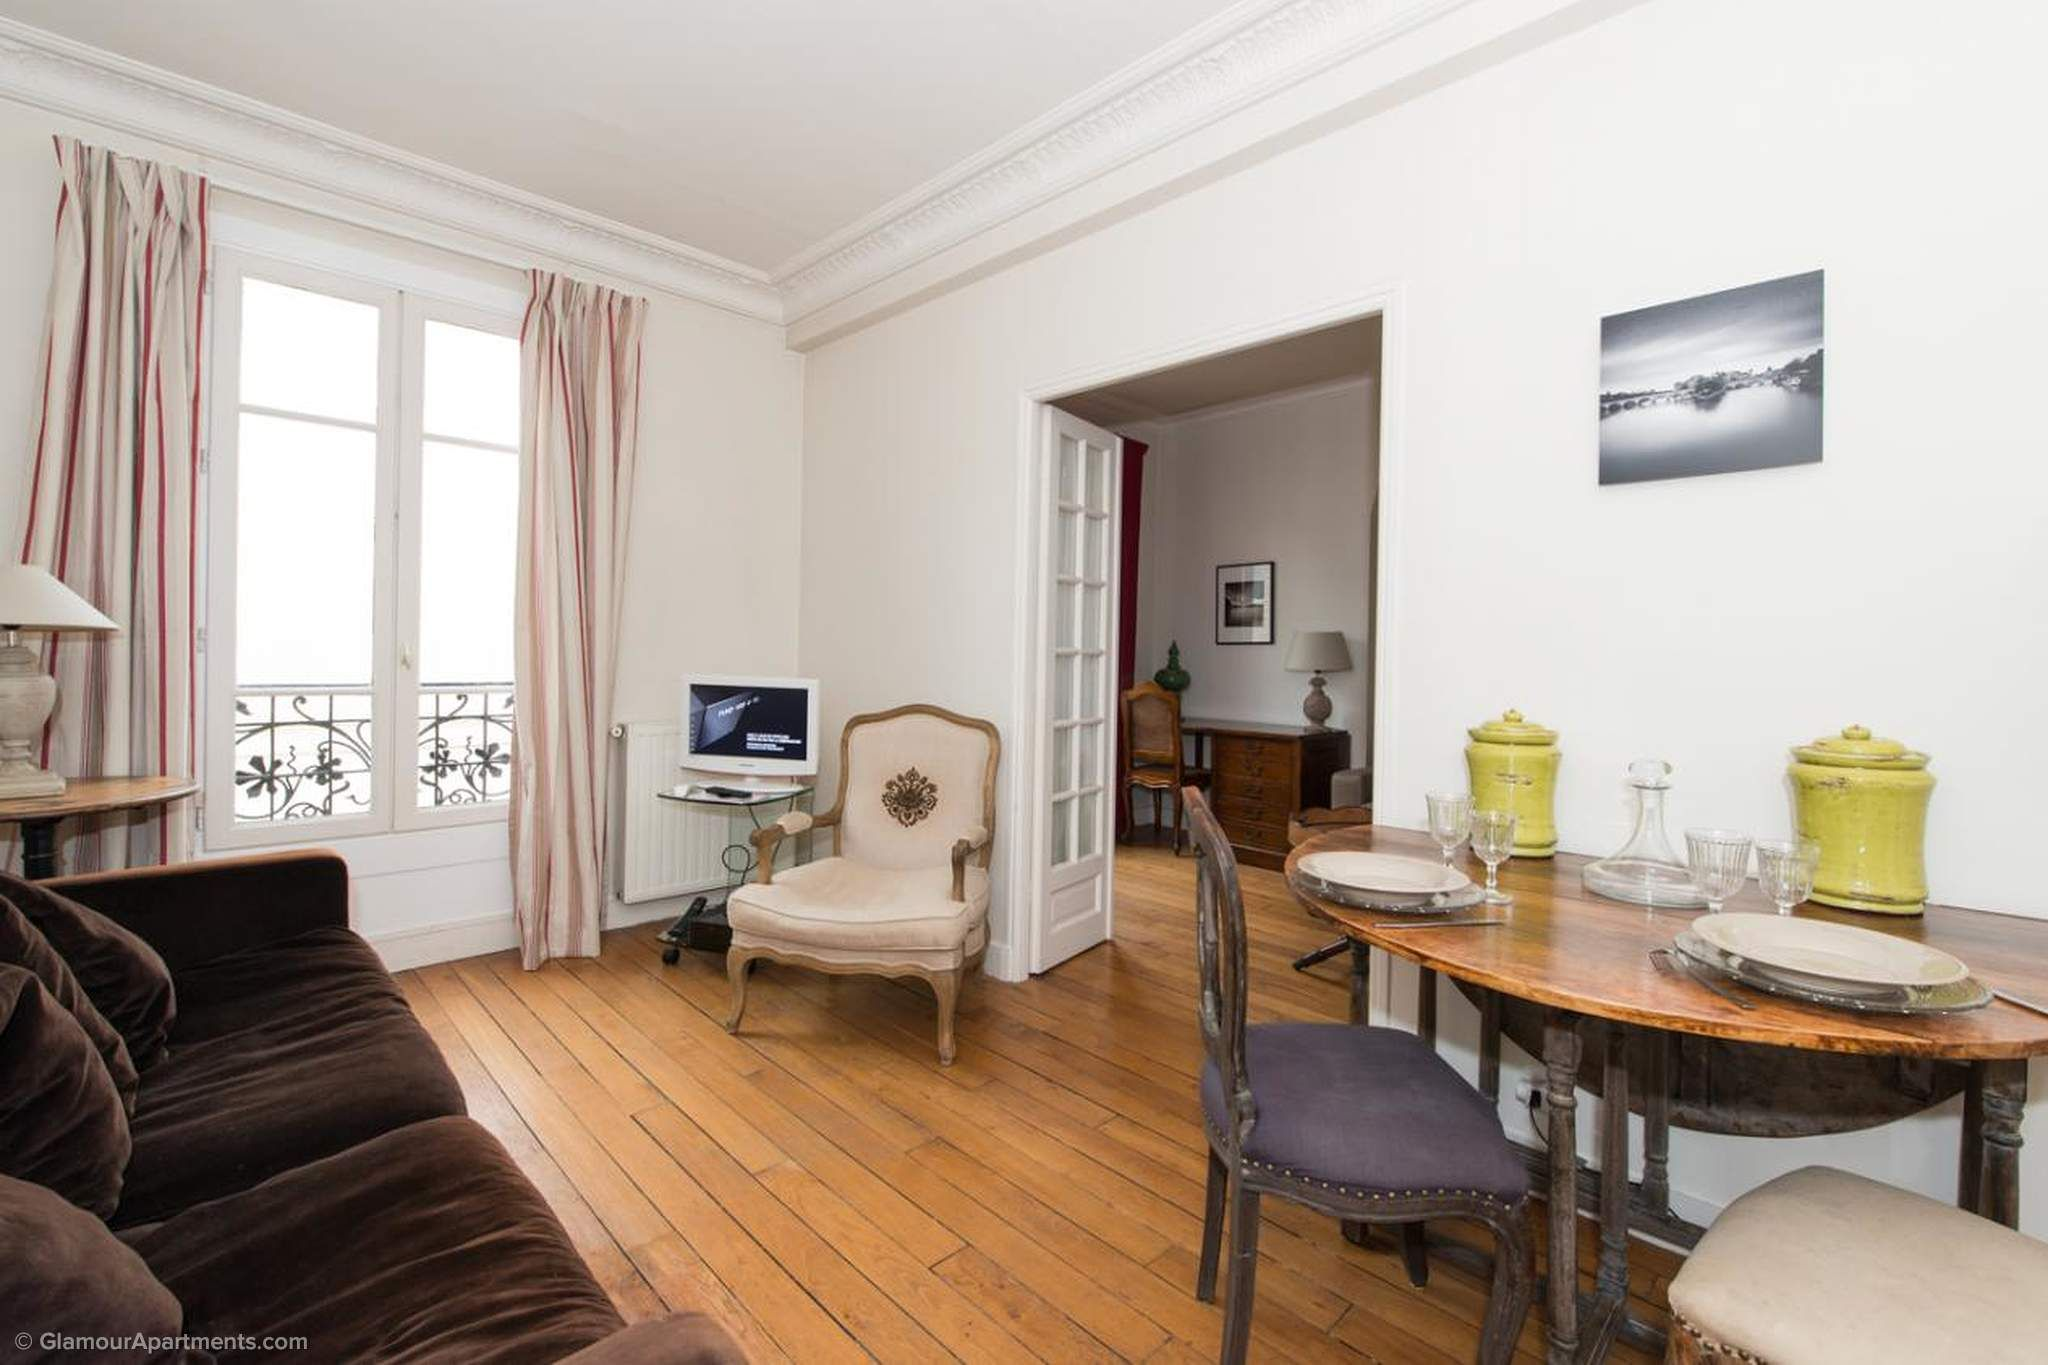 1 Bedroom Furnished Apartment For Rent On Rue Des Francs Bourgeois 4th Arrondissement In The Famous Le Marais Area Furnished Apartments For Rent Furnished Apartment 1 Bedroom Apartment